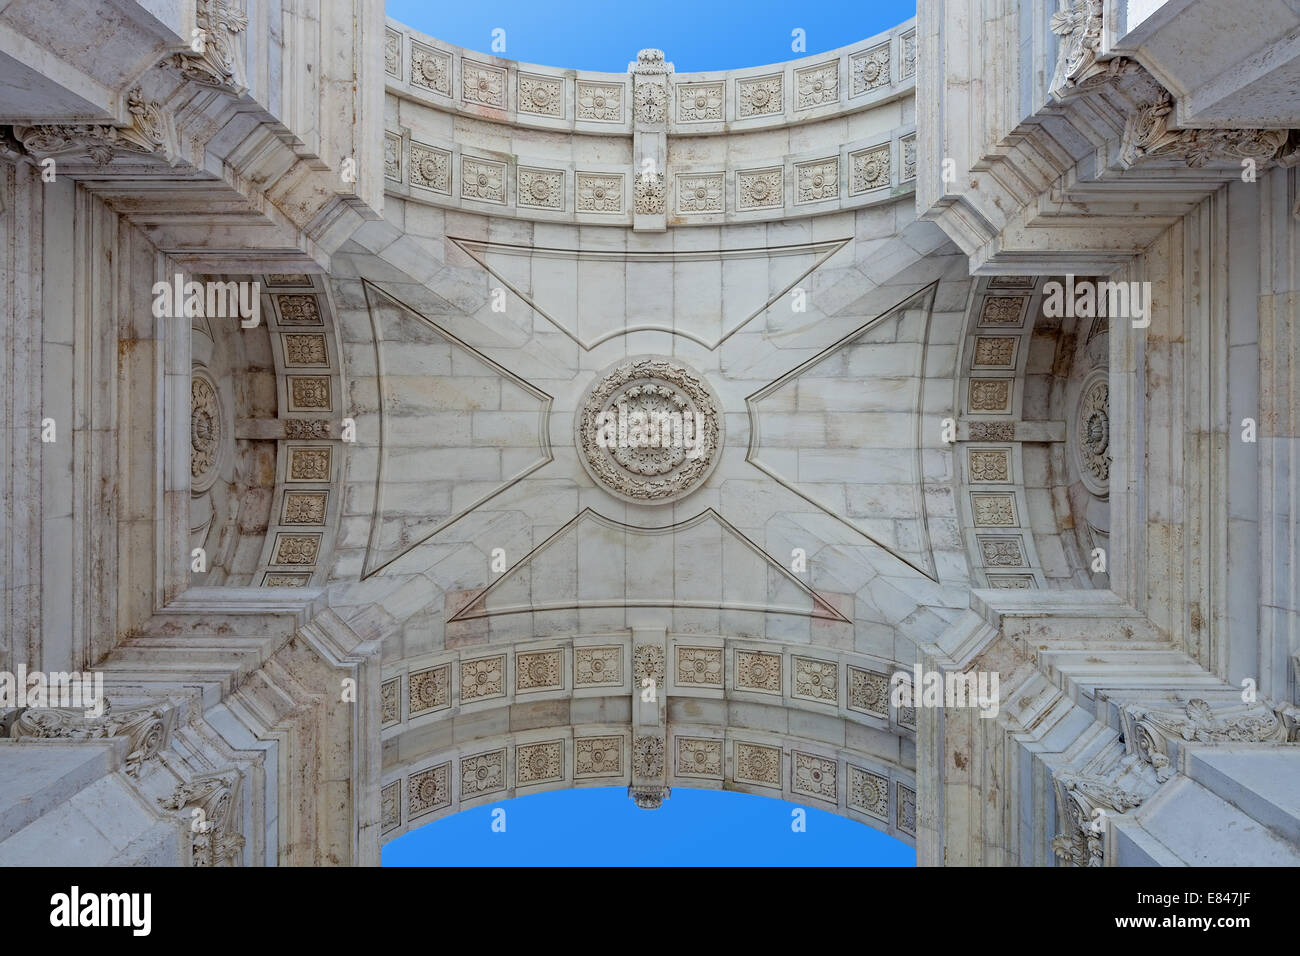 Detail from under the iconic Triumphal Arch of Rua Augusta Street in Praca do Comercio or Terreiro do Paco, Lisbon, - Stock Image